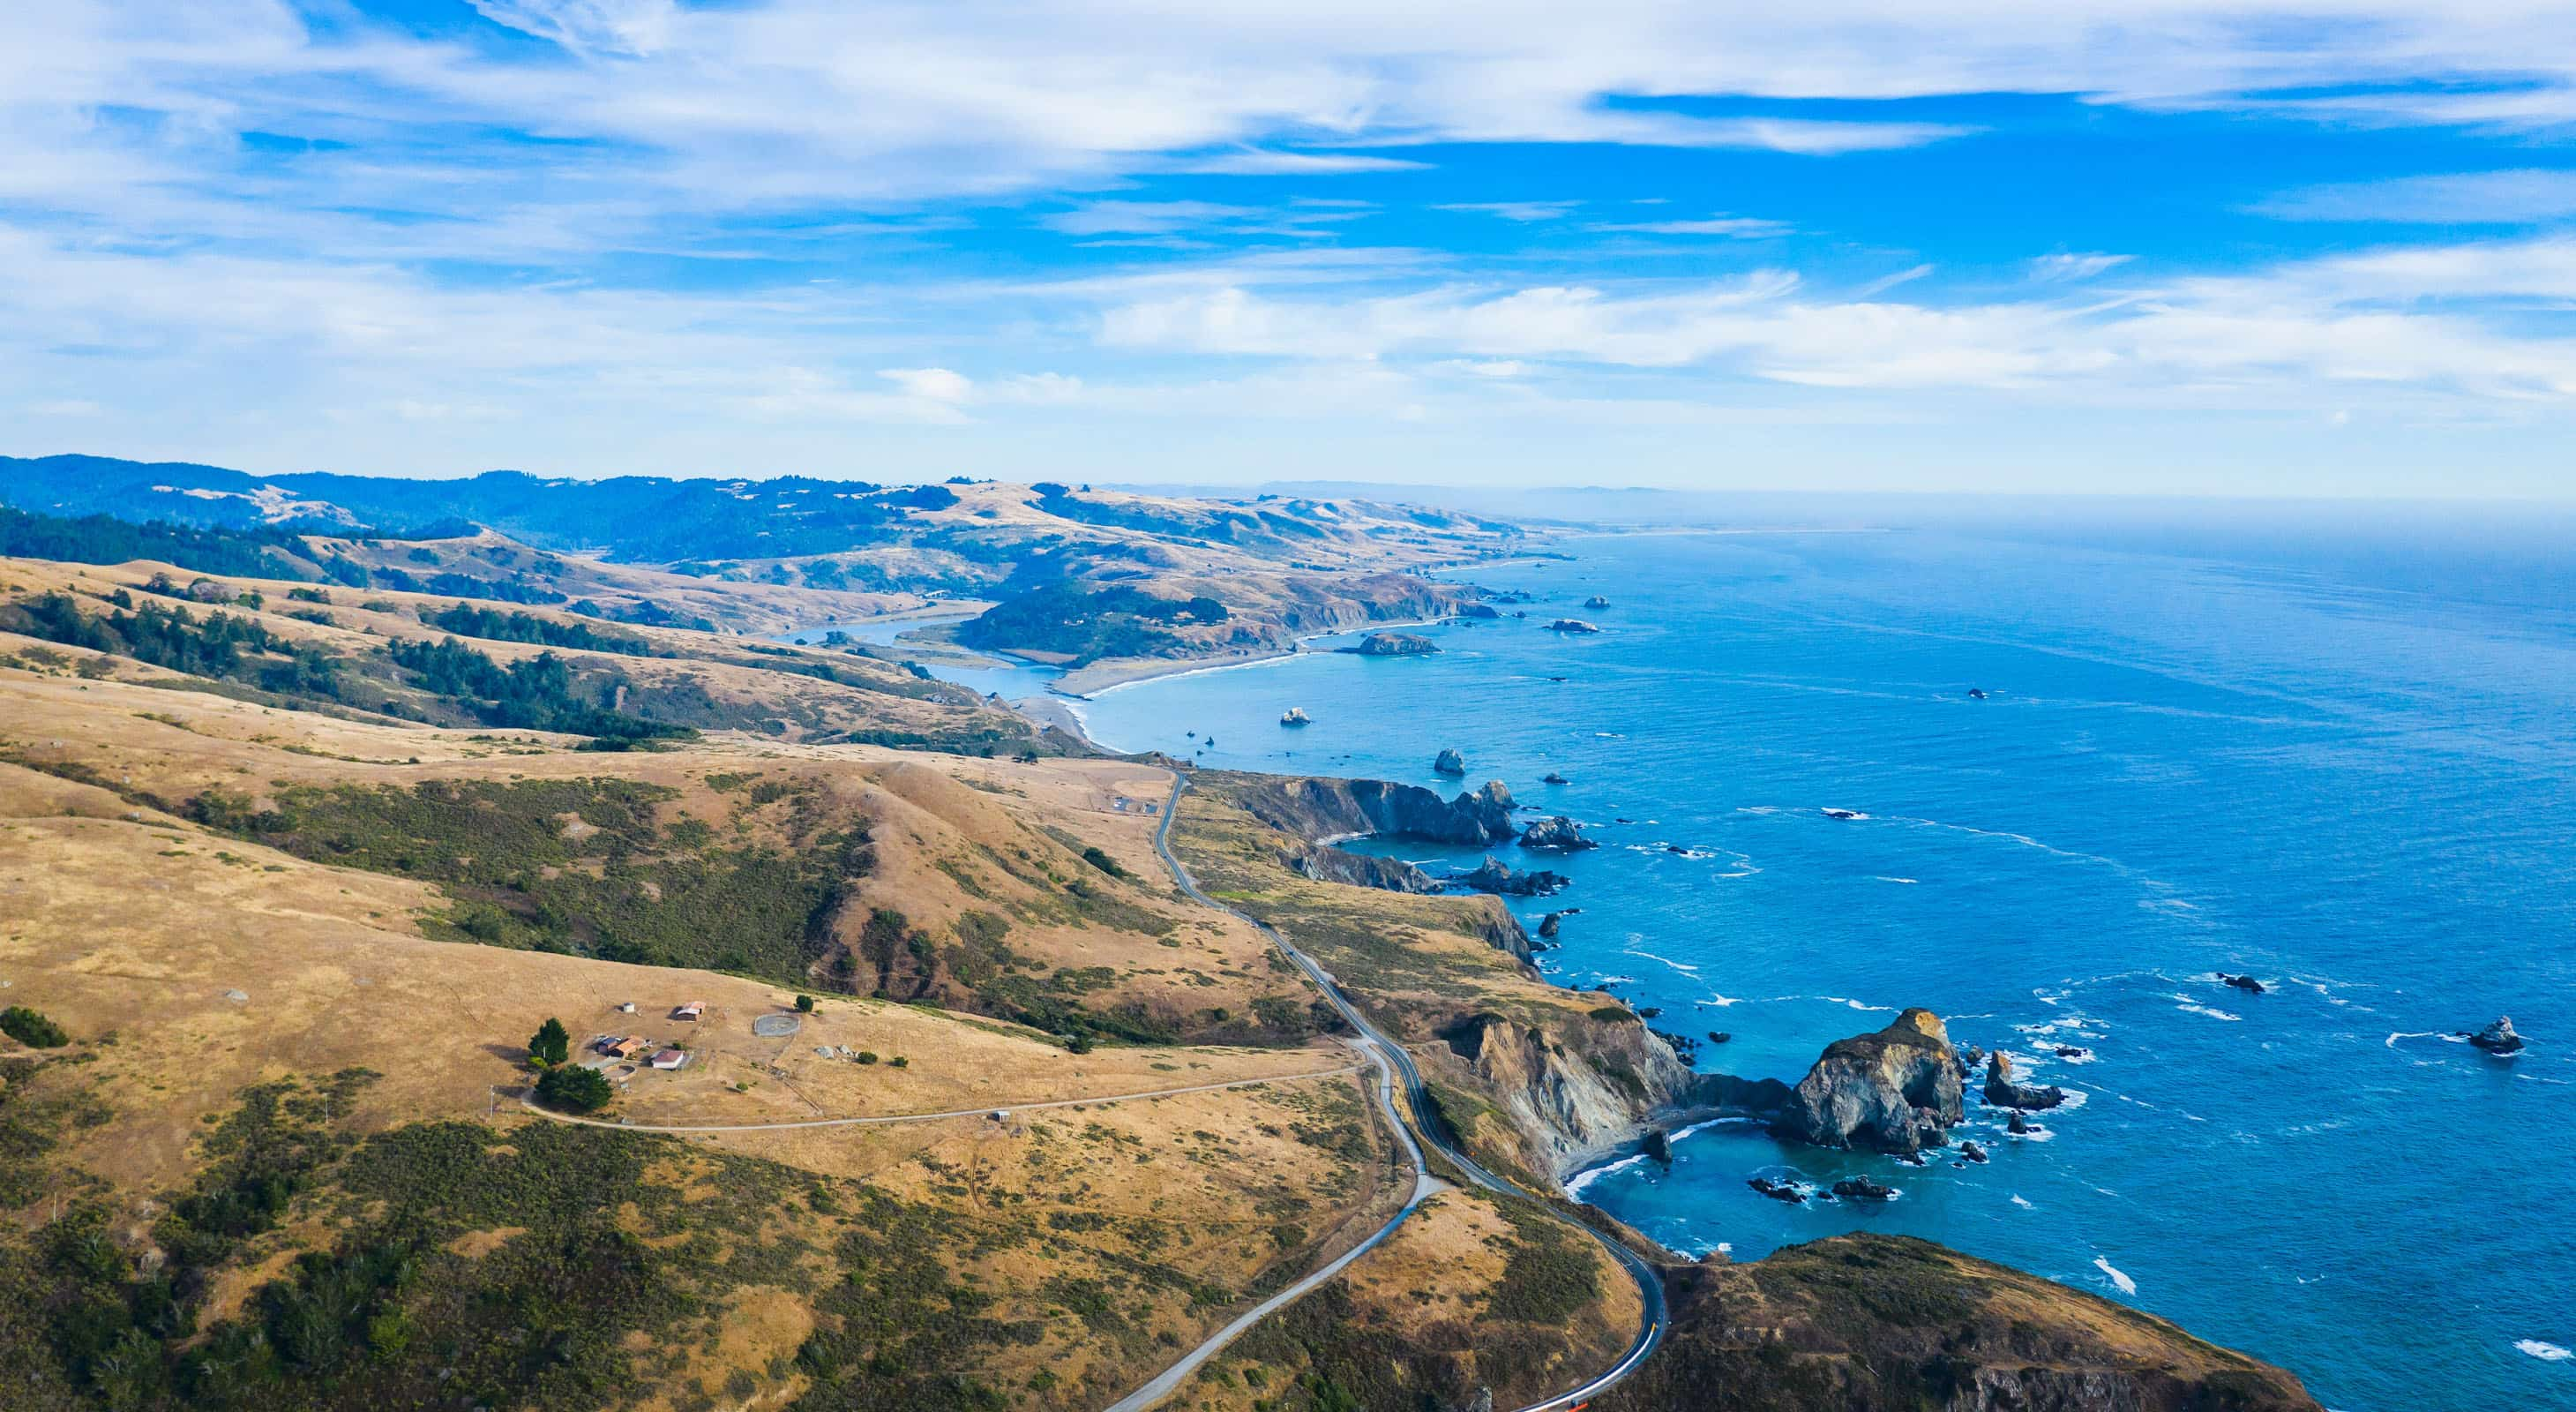 A An aerial view of the Sonoma Coast and the Russian River outlet